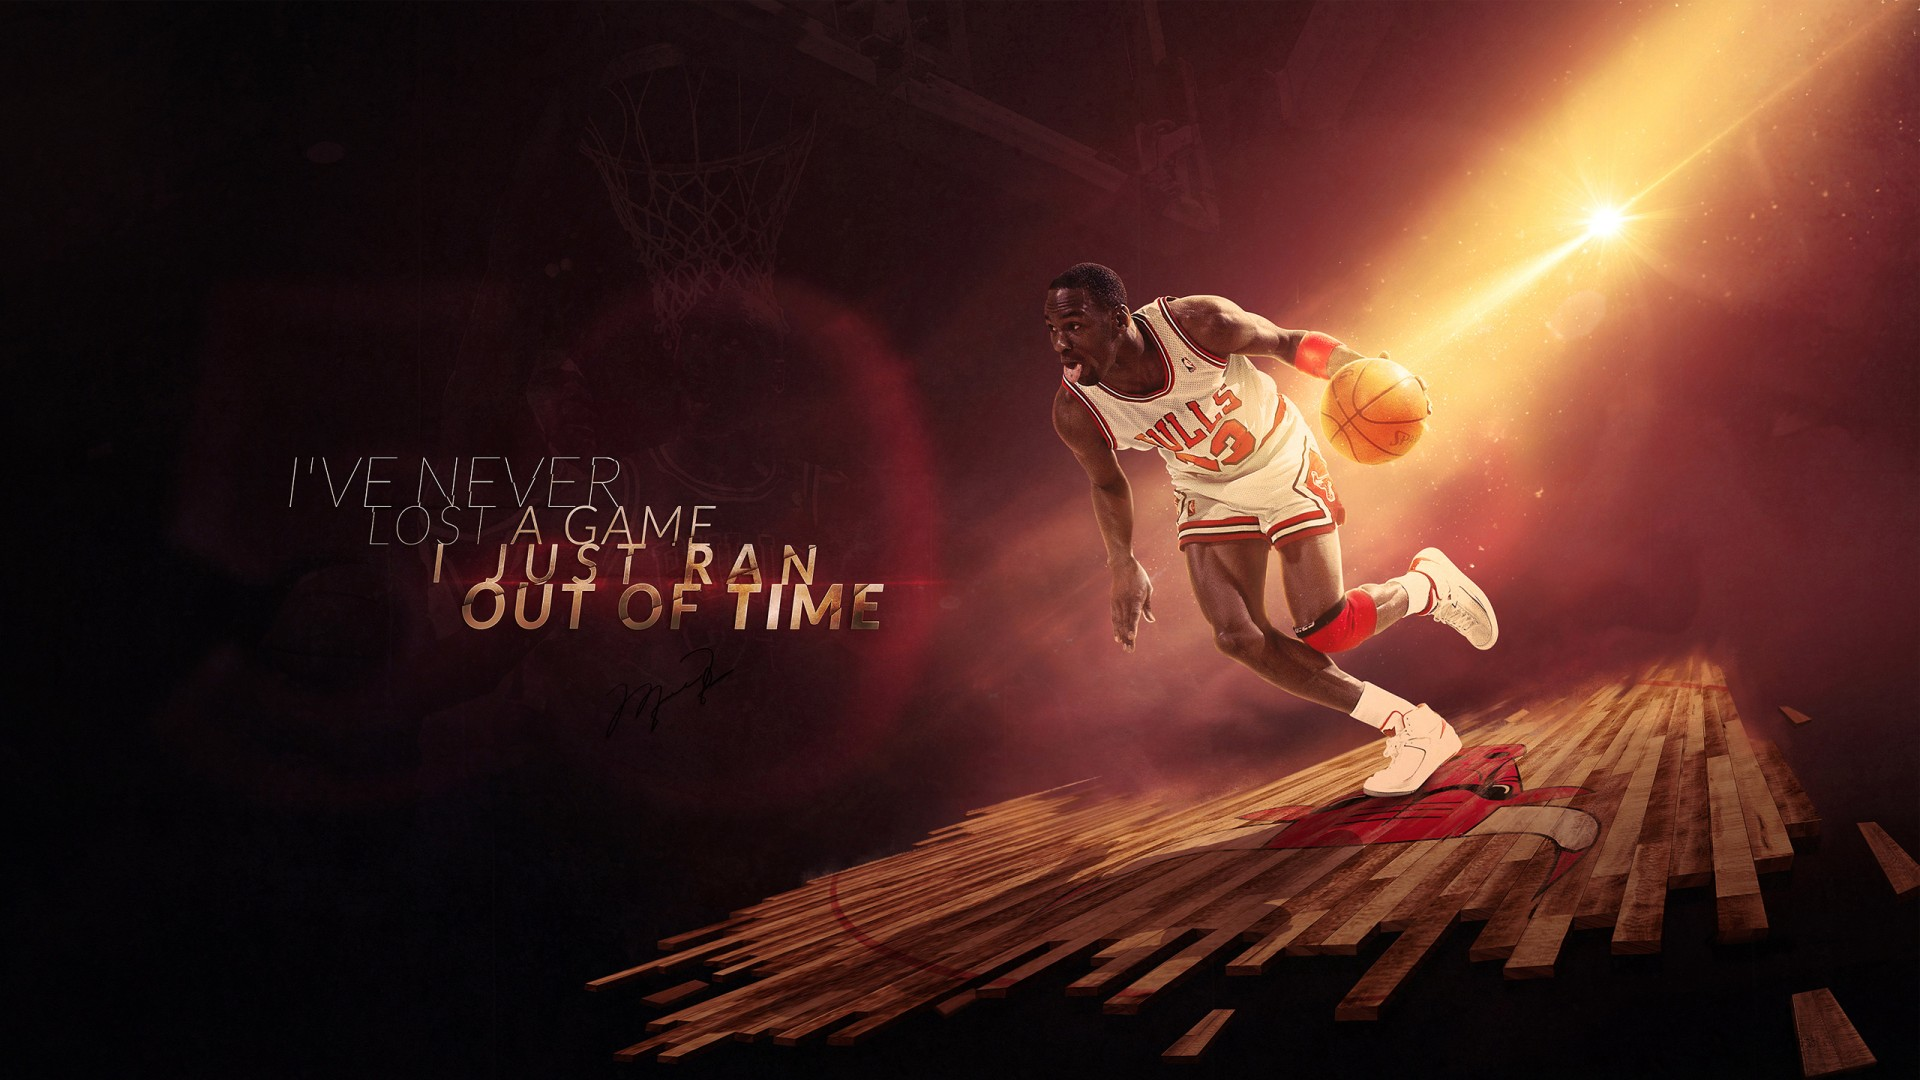 Neon Sign Iphone Wallpaper Michael Jordan Chicago Bulls Wallpapers Hd Wallpapers